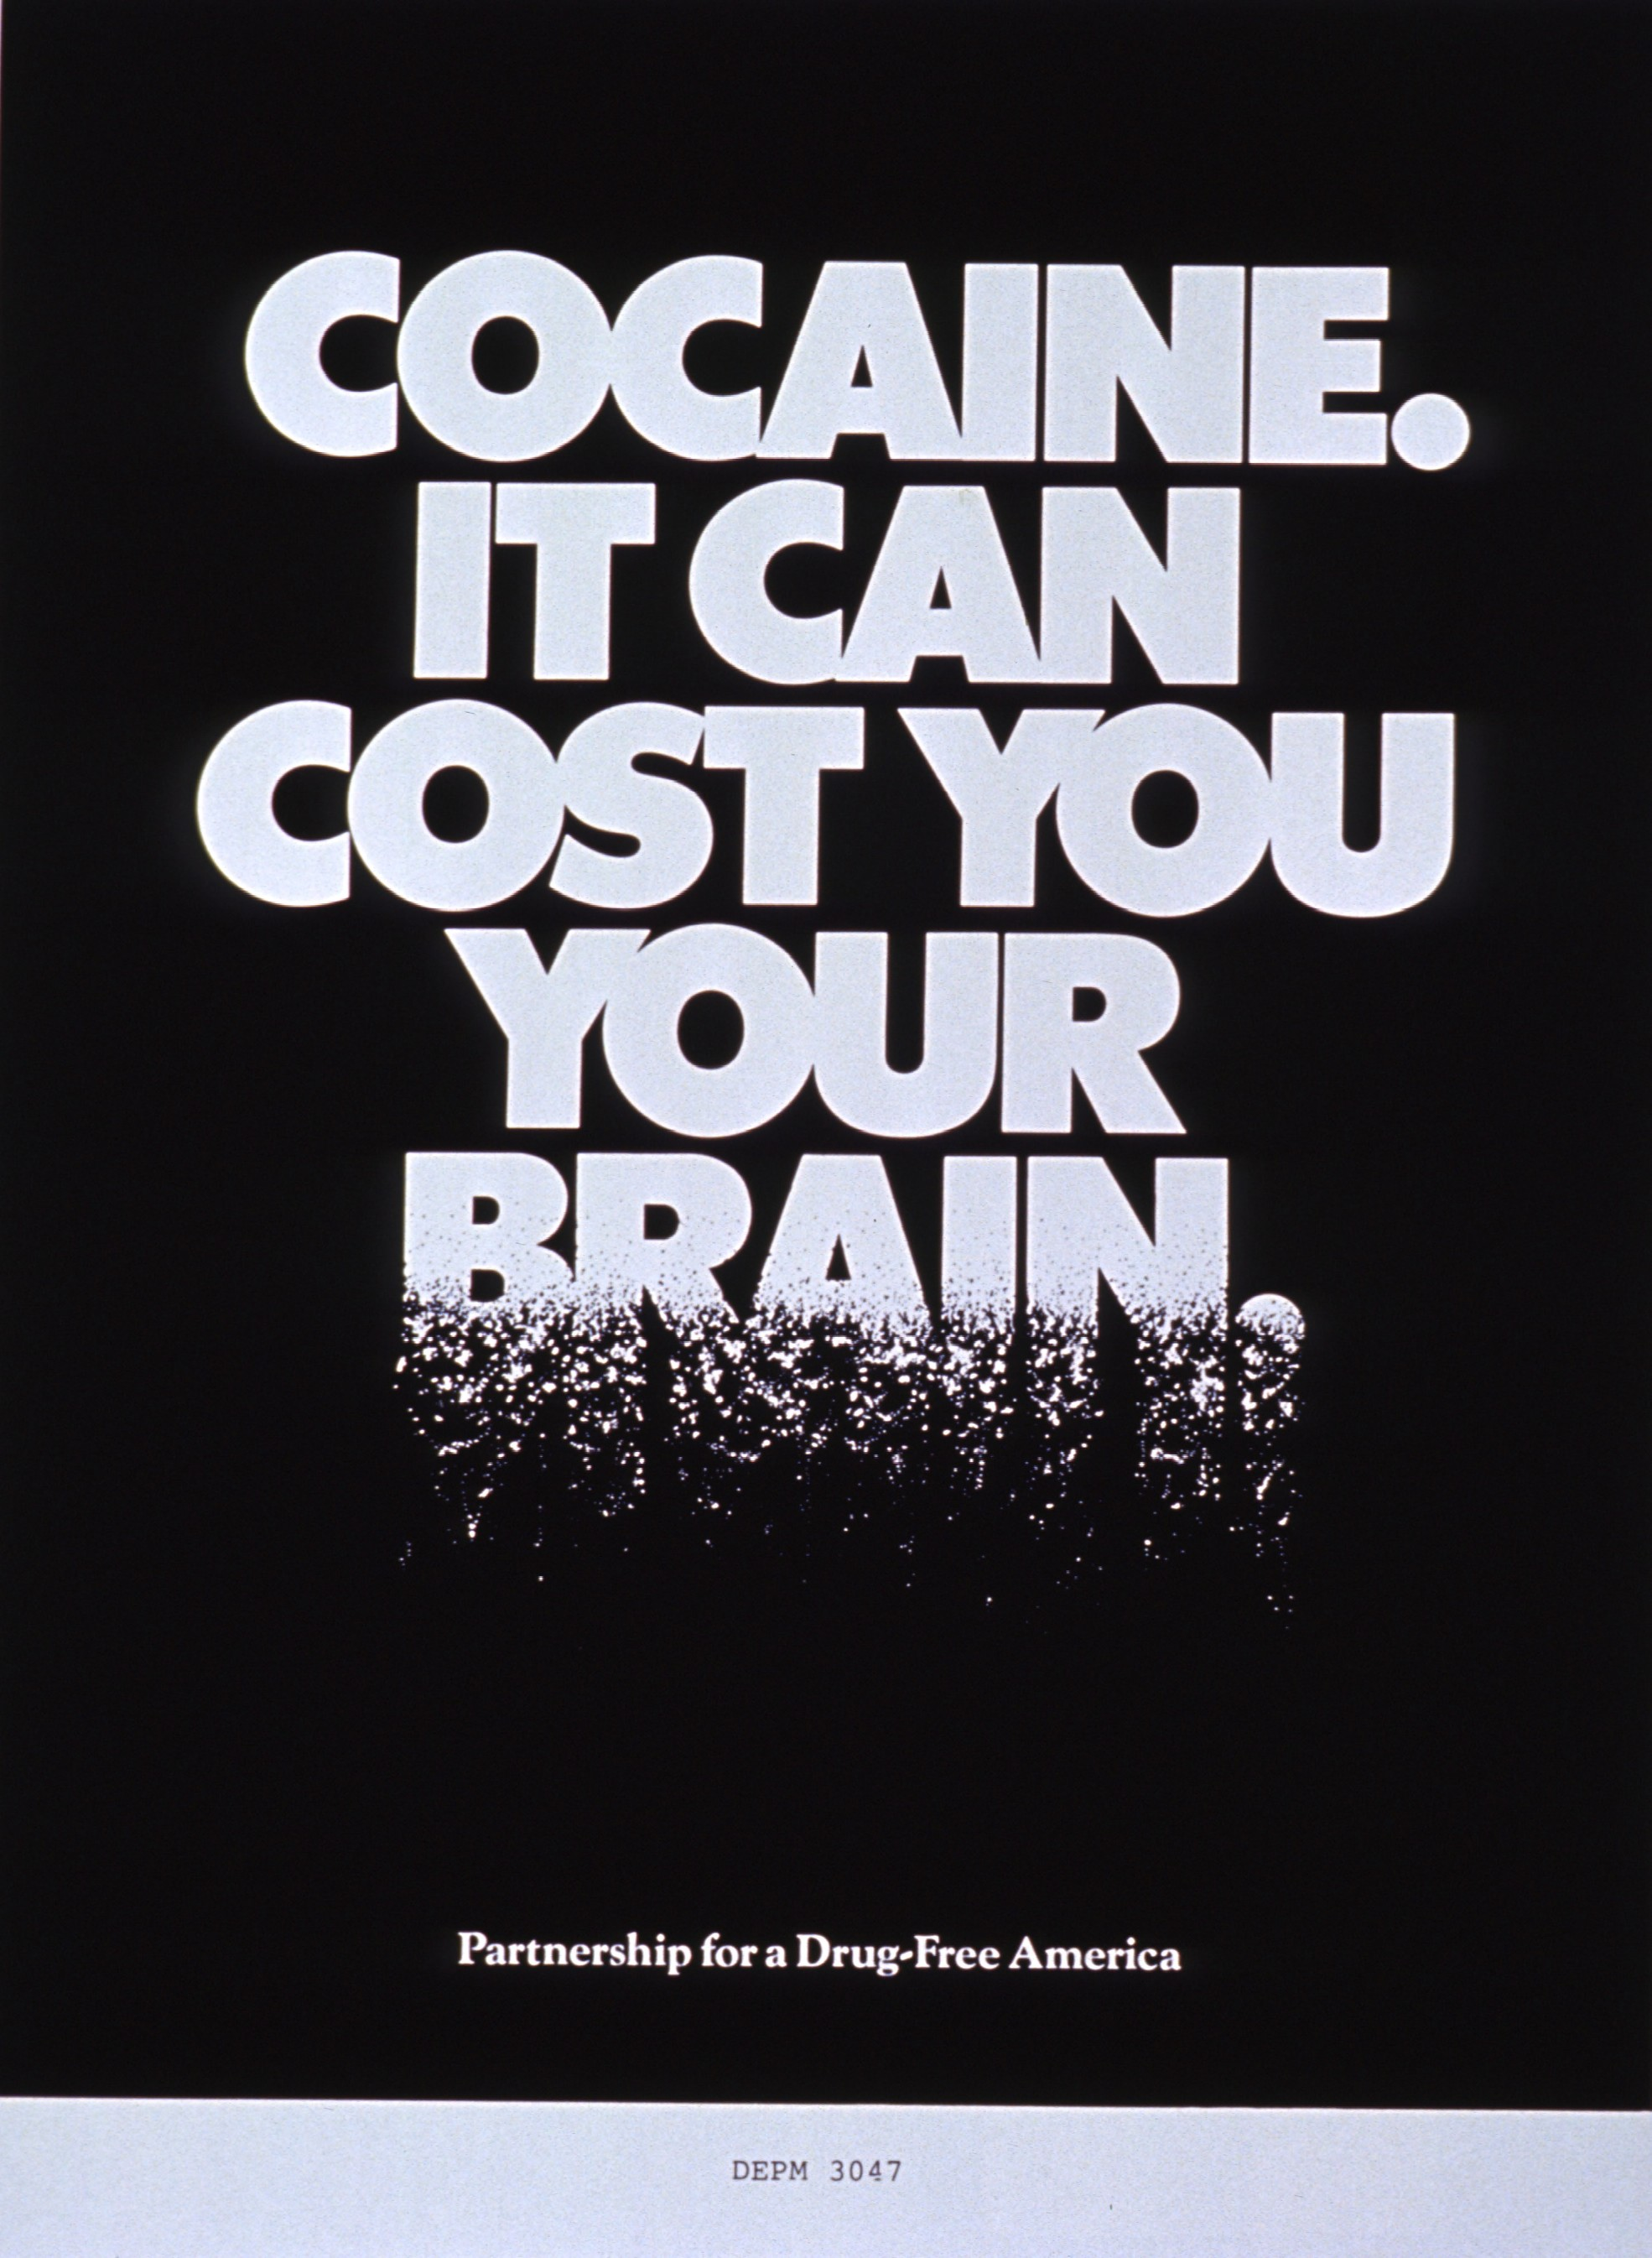 Partnership For A Drug Free America Images Cocaine It Can Cost You Your Brain Ad 1987 HD Wallpaper And Background Photos